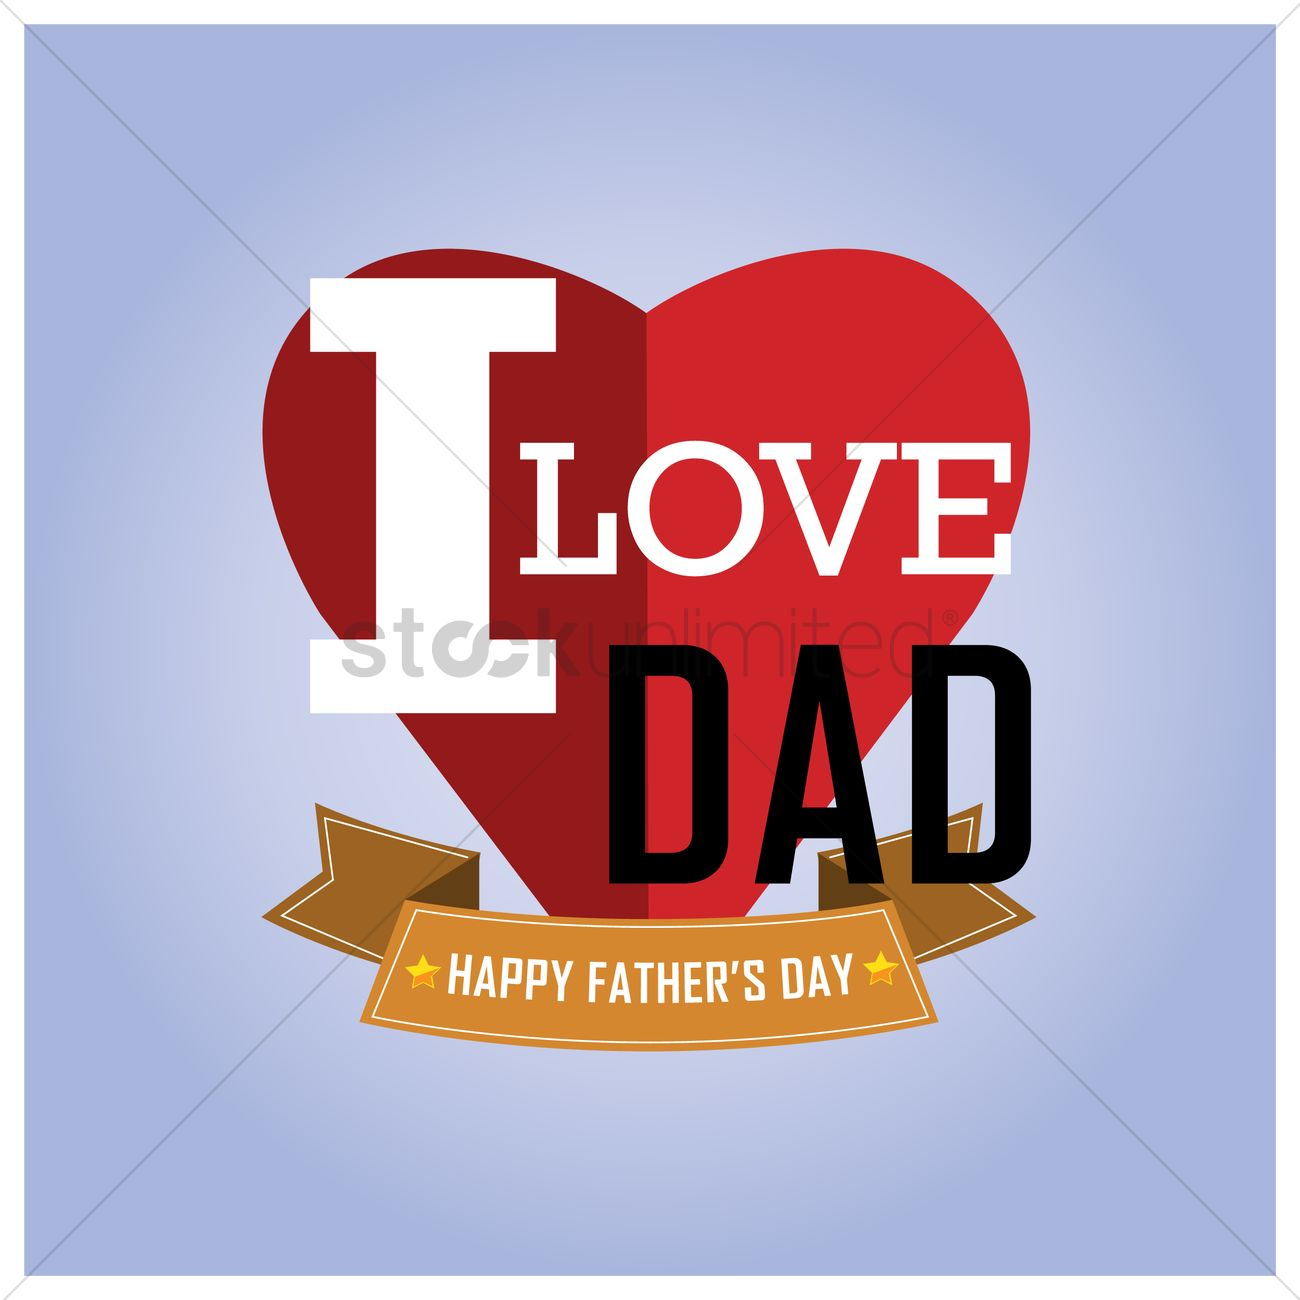 Happy fathers day wallpaper Vector Image   1585479 StockUnlimited 1300x1300